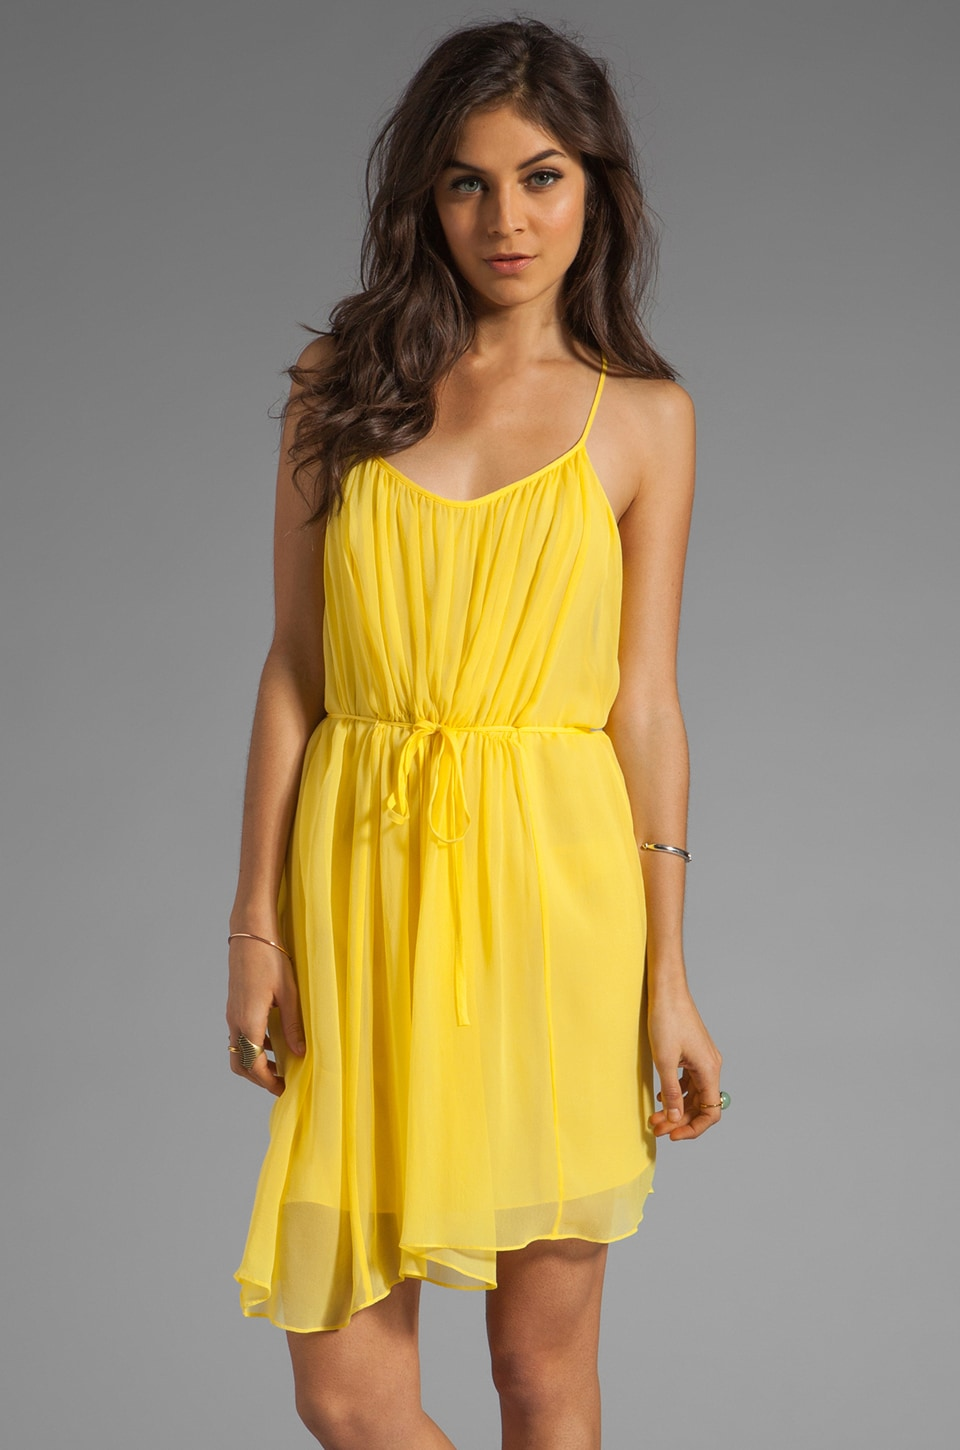 Susana Monaco Chiffon Anais Dress in Lemon Drop